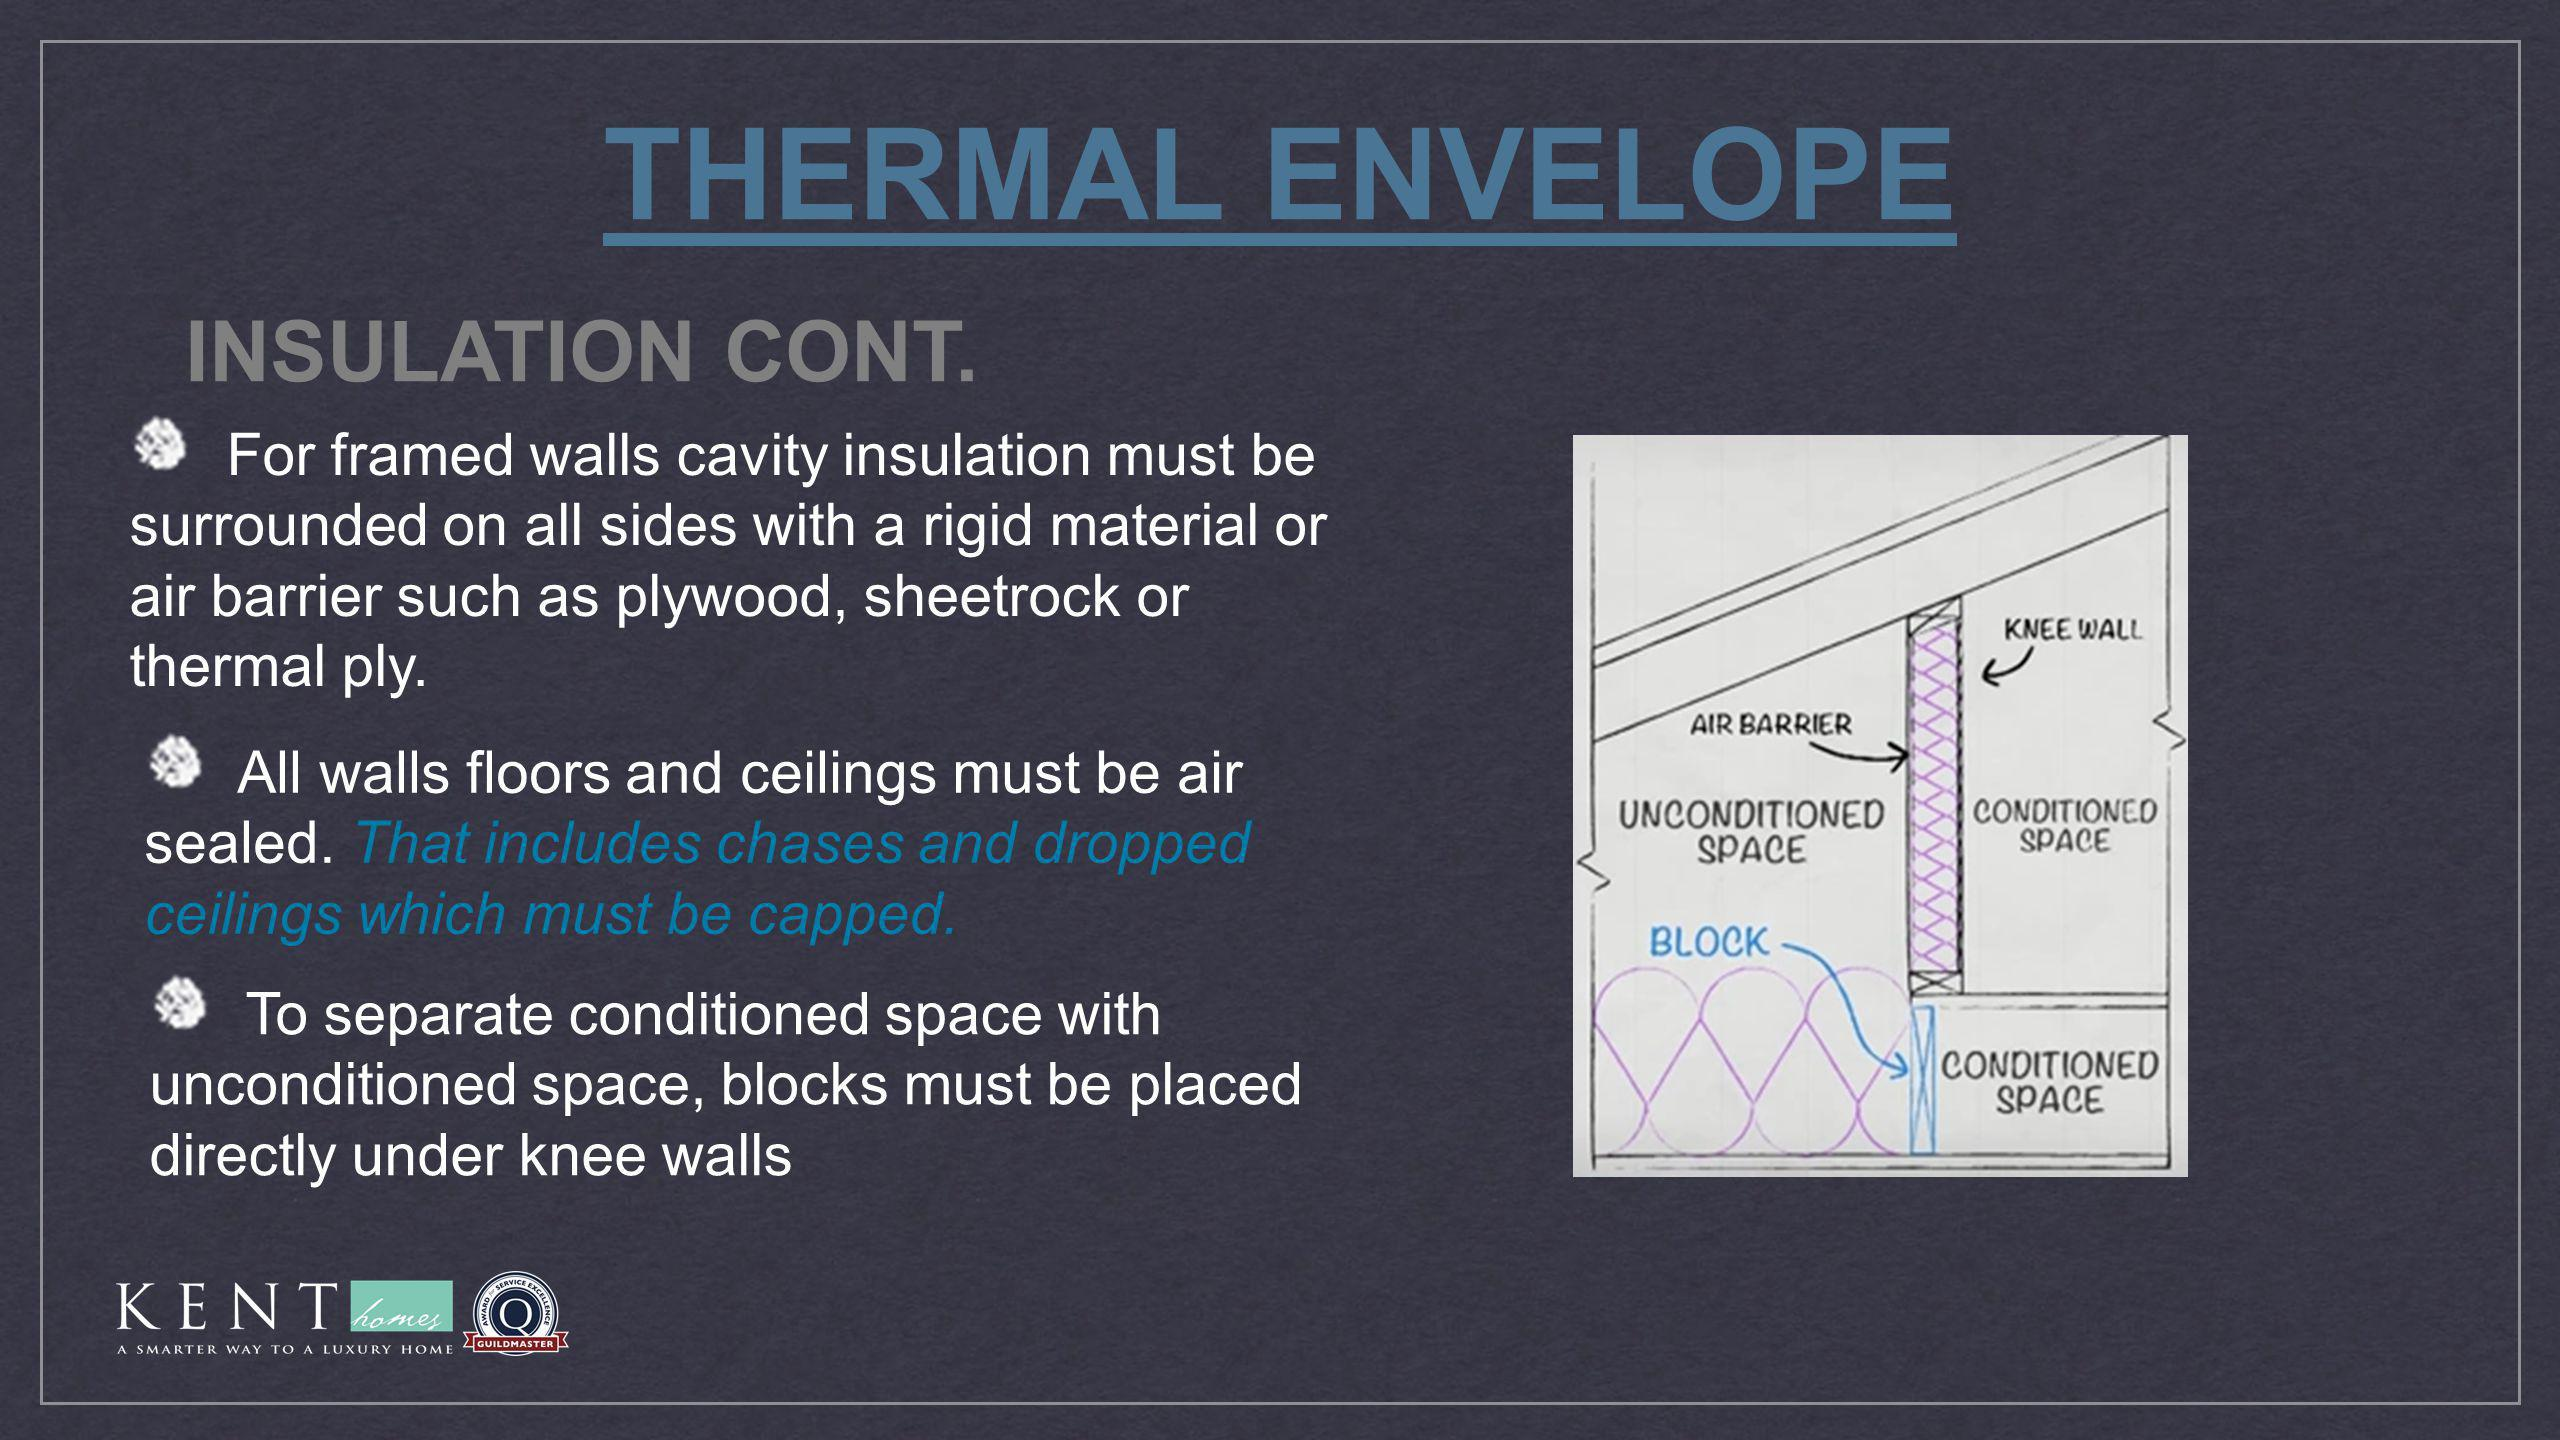 THERMAL ENVELOPE For framed walls cavity insulation must be surrounded on all sides with a rigid material or air barrier such as plywood, sheetrock or